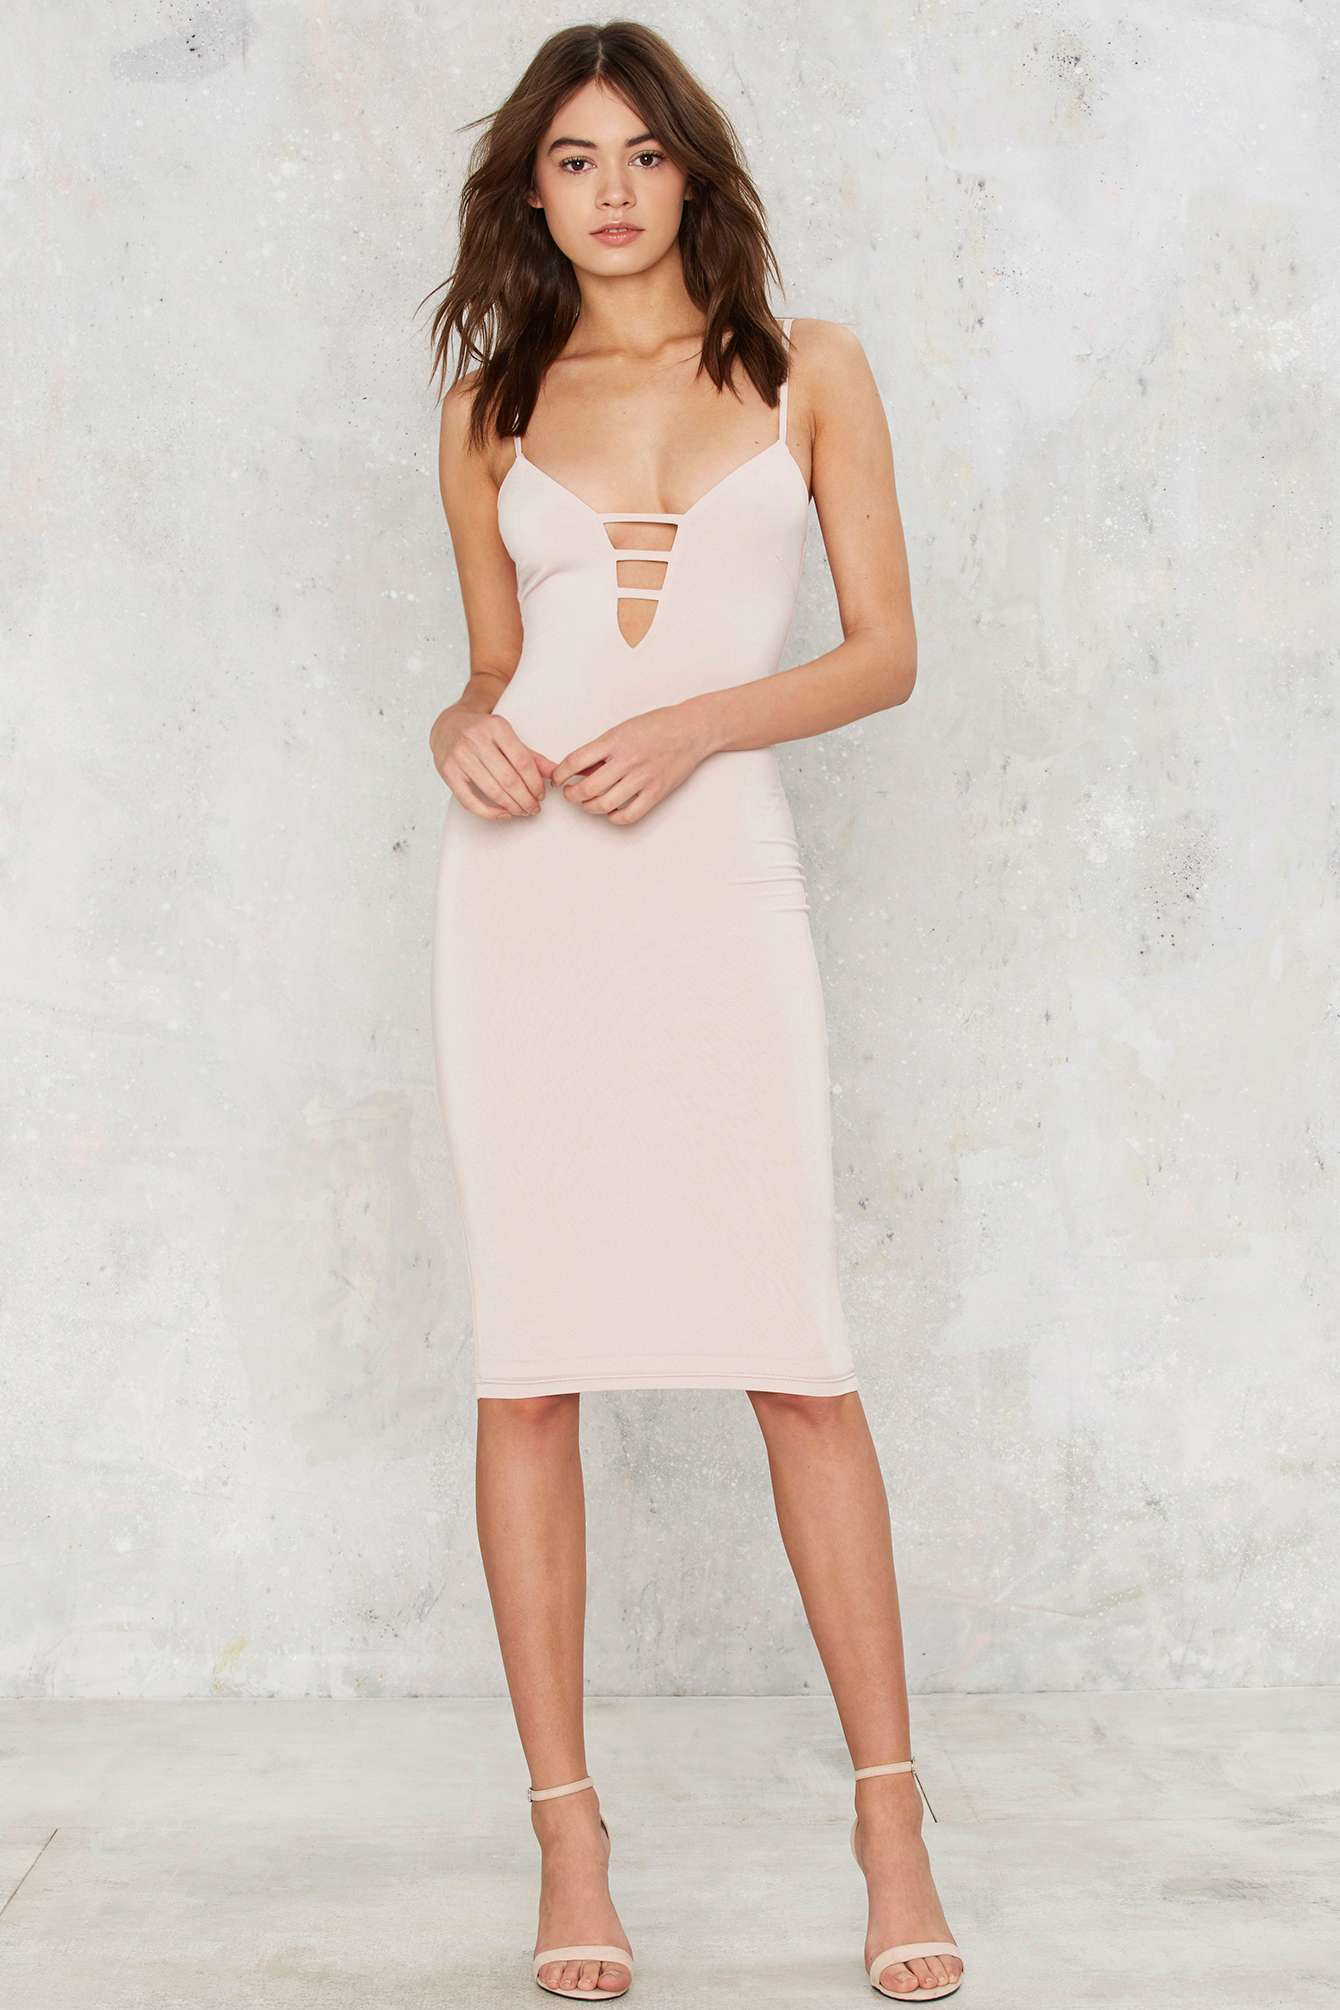 Nasty Gal Pushing The Limit Bodycon Dress - Nude In Natural  Lyst-8335